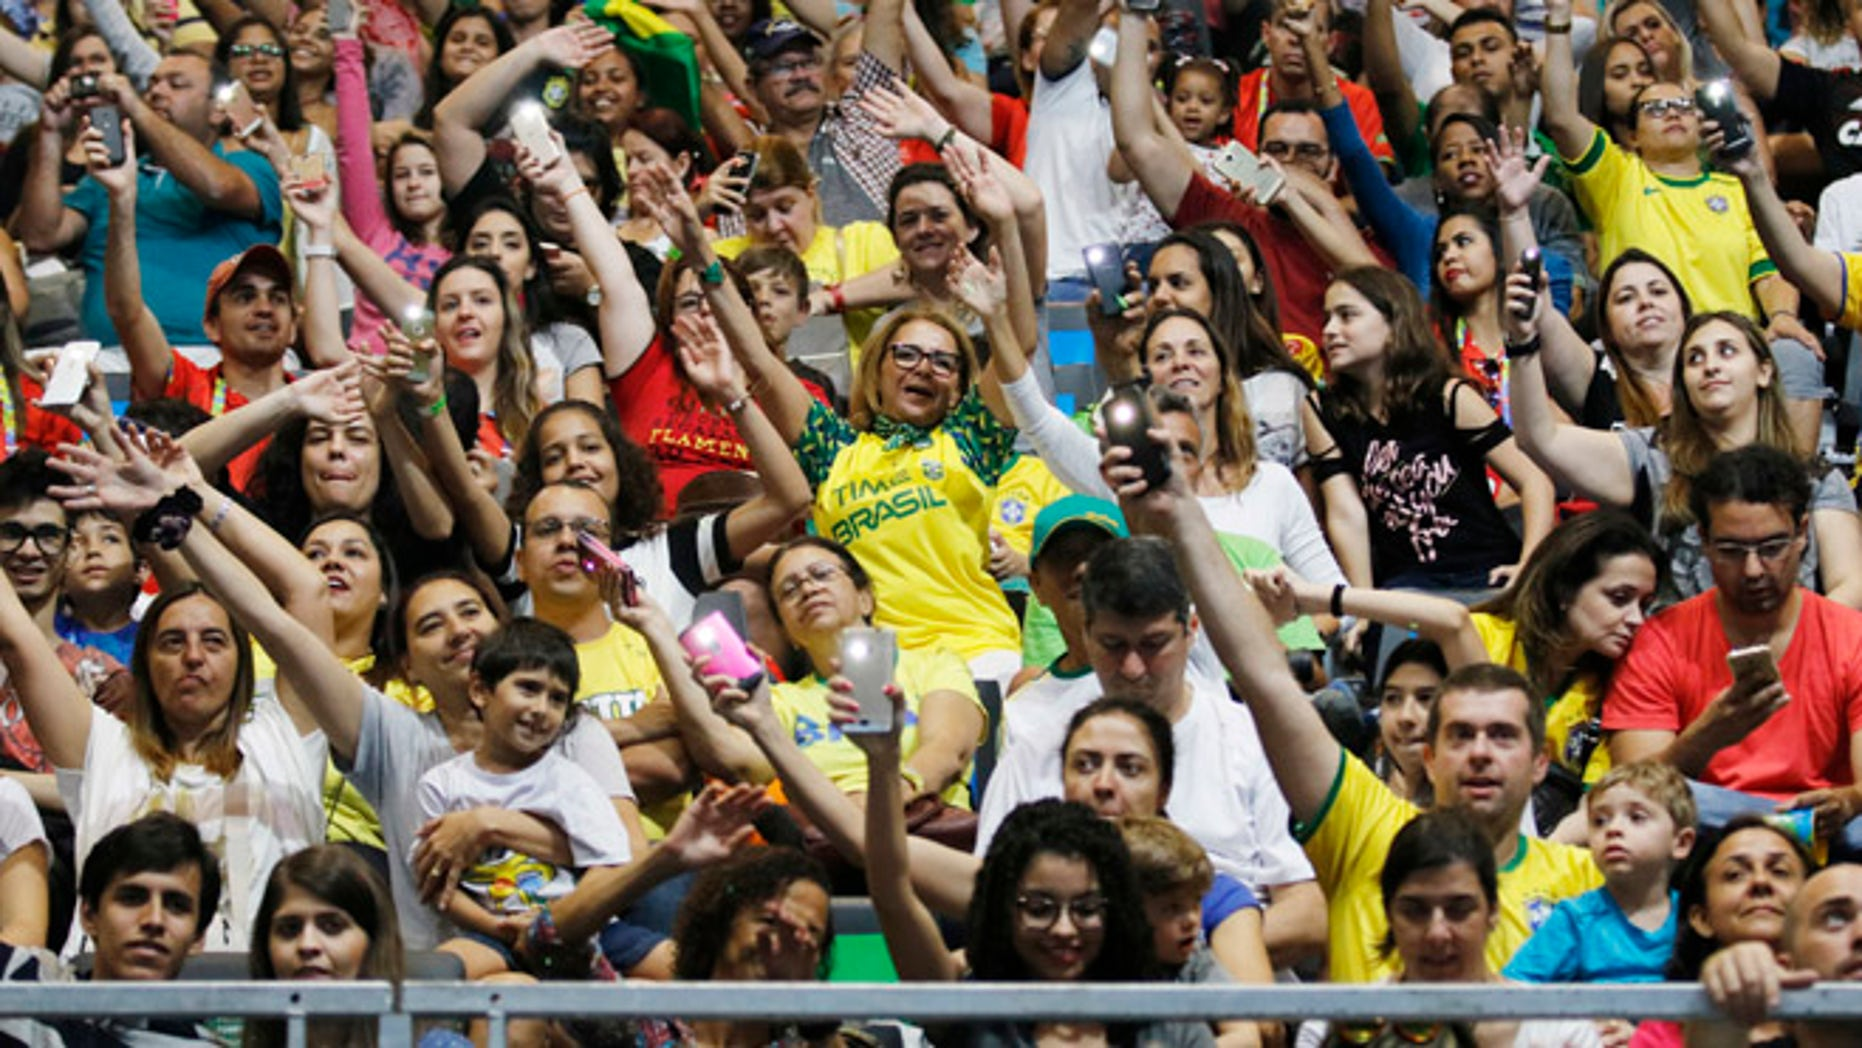 Spectators dance and cheer during the women's sitting volleyball preliminary game between Iran and the USA at the 2016 Paralympic Games in Rio de Janeiro, Brazil, Saturday, Sept. 10, 2016. Total ticket sales now sit at 1,863,000, the second-highest Paralympic Games total ever, behind London. (Jenn Finch/University of Georgia via AP)